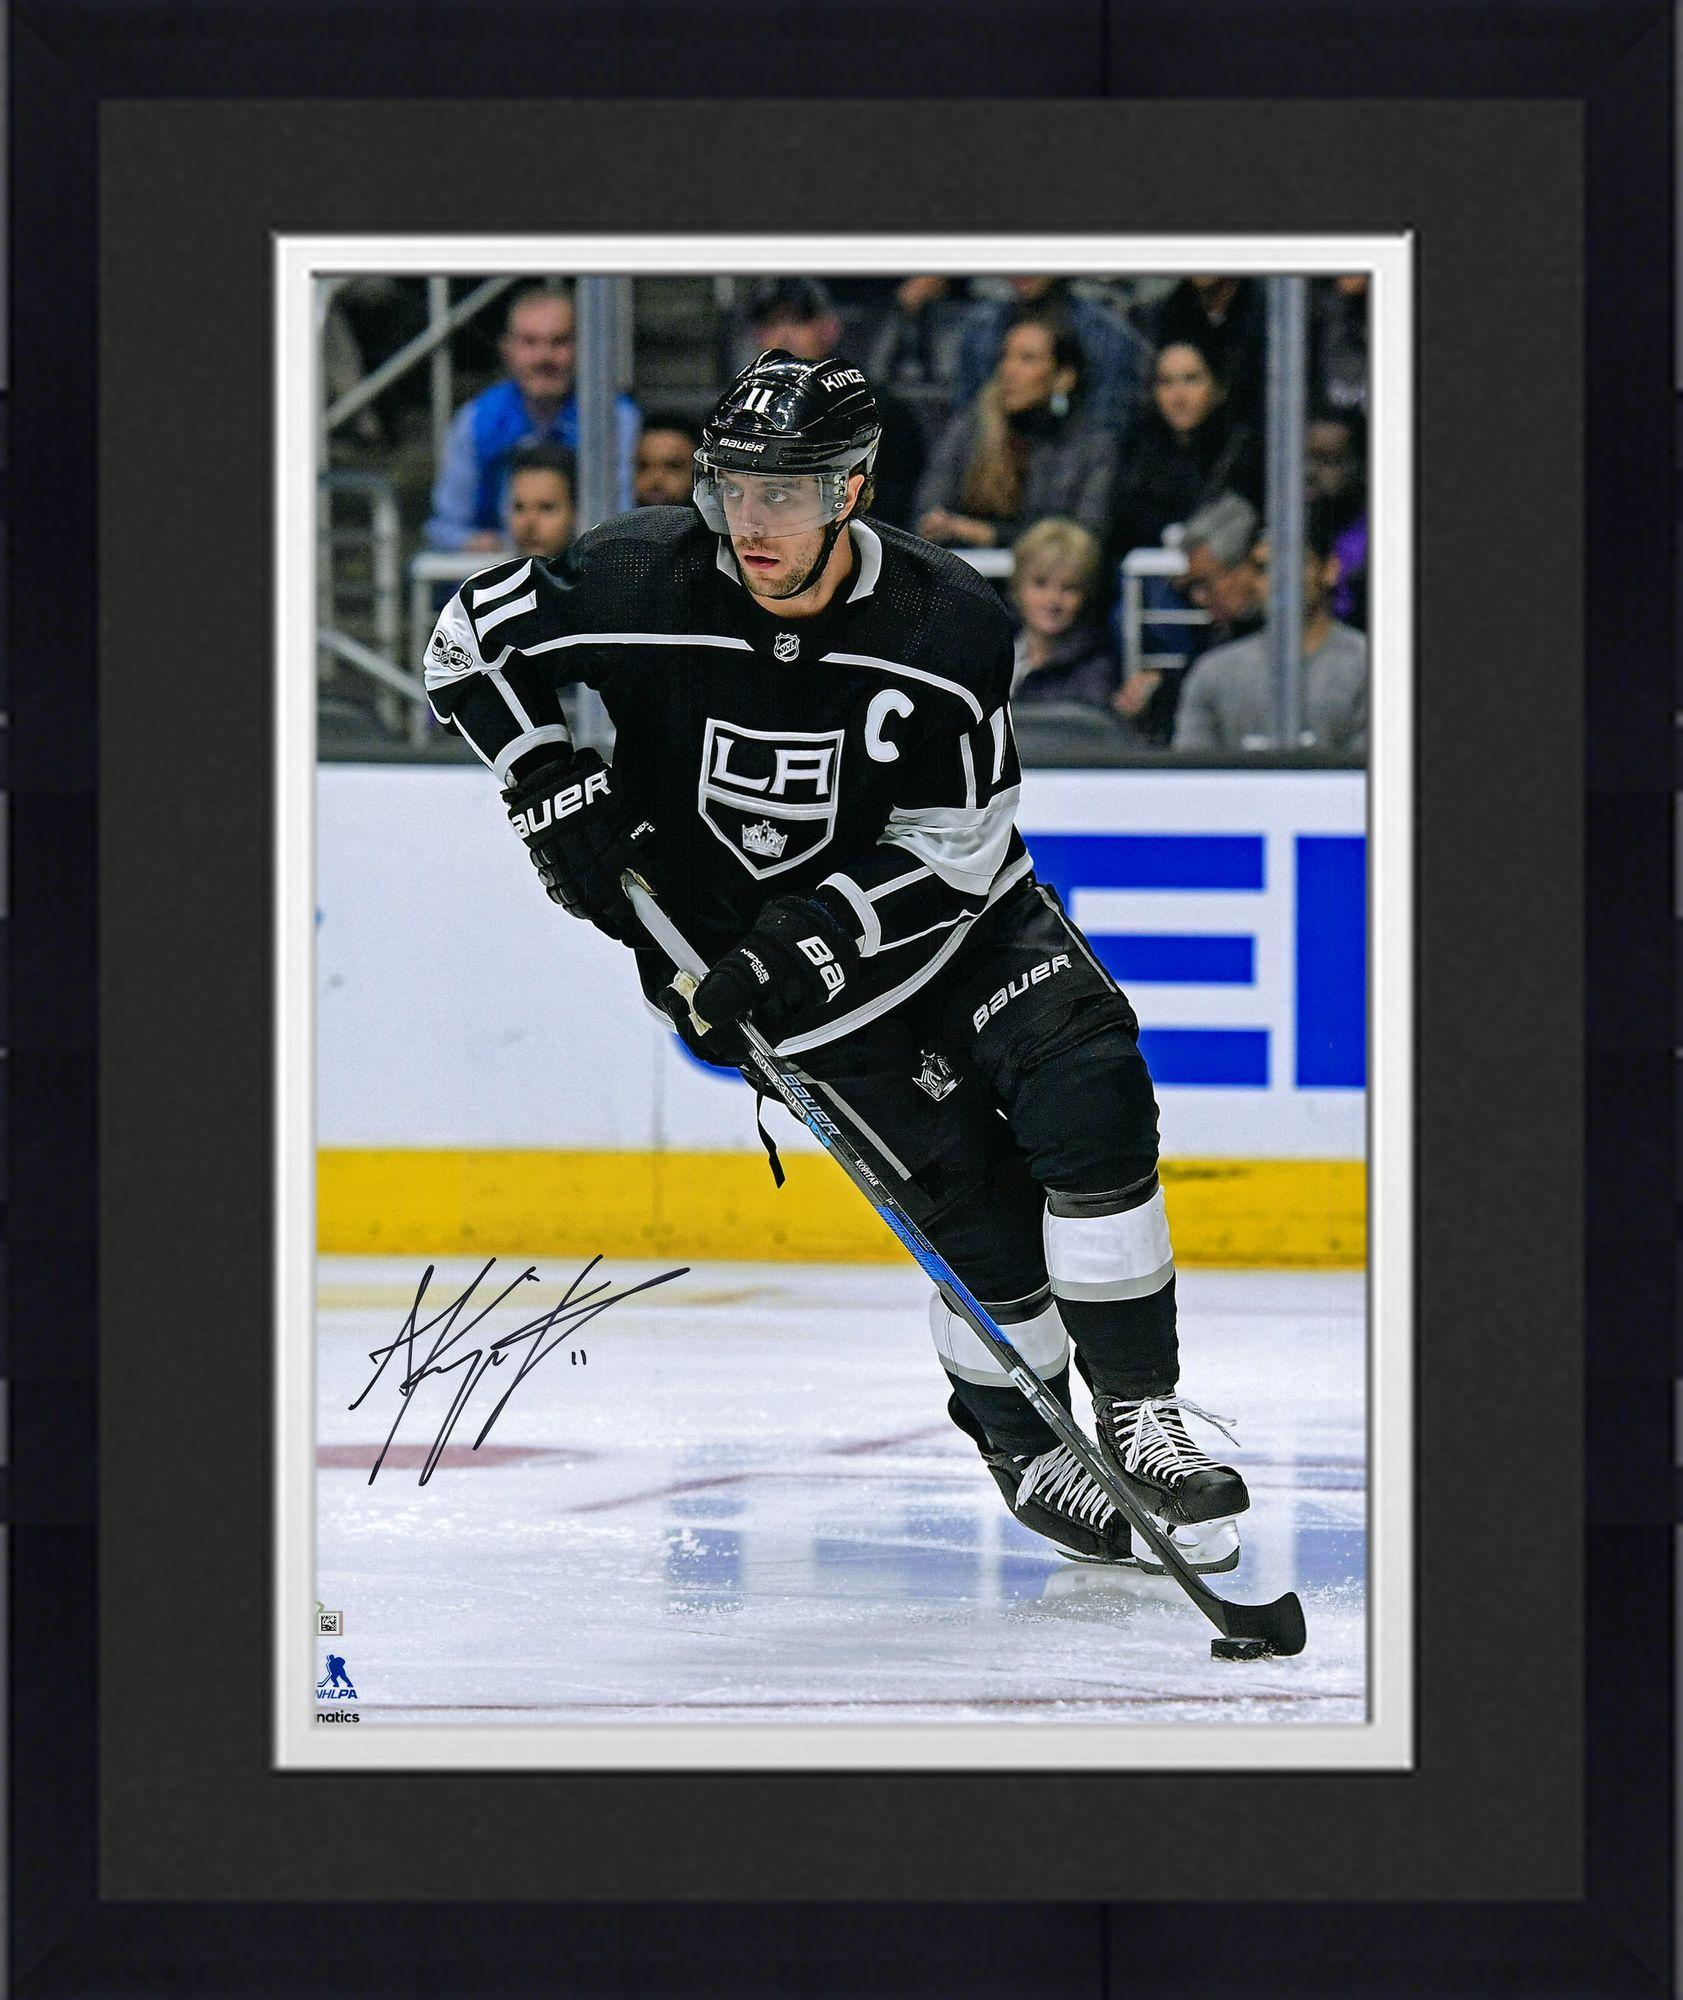 "Framed Anze Kopitar Los Angeles Kings Autographed 16"" x 20"" Black Jersey Skating Photograph Fanatics Authentic... by Fanatics Authentic"